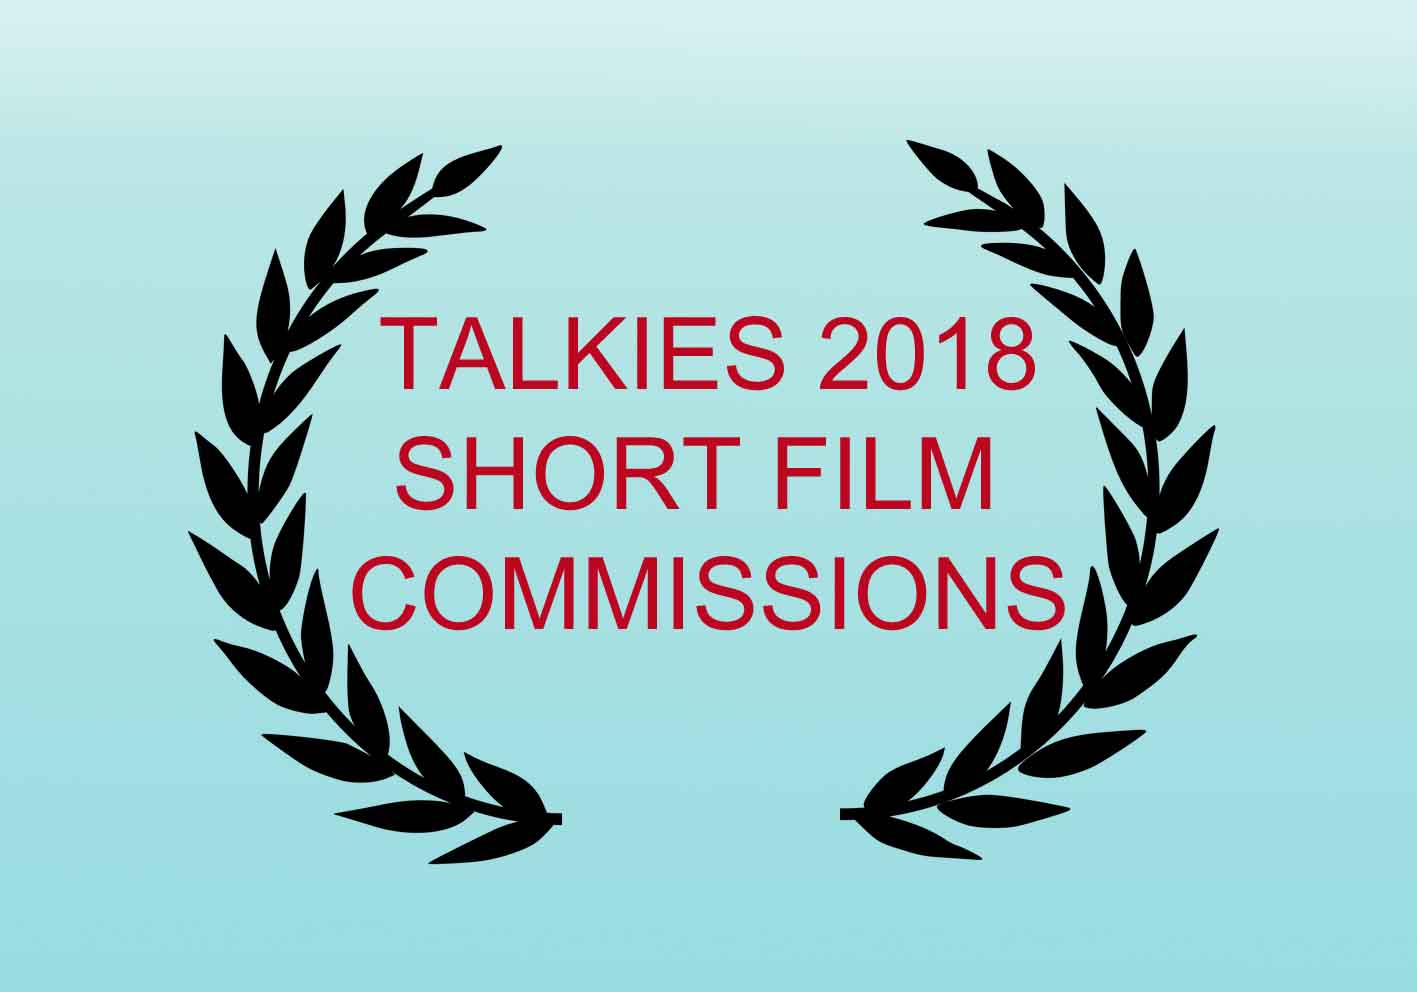 TALKIES SHORT FILM AWARDS 2018